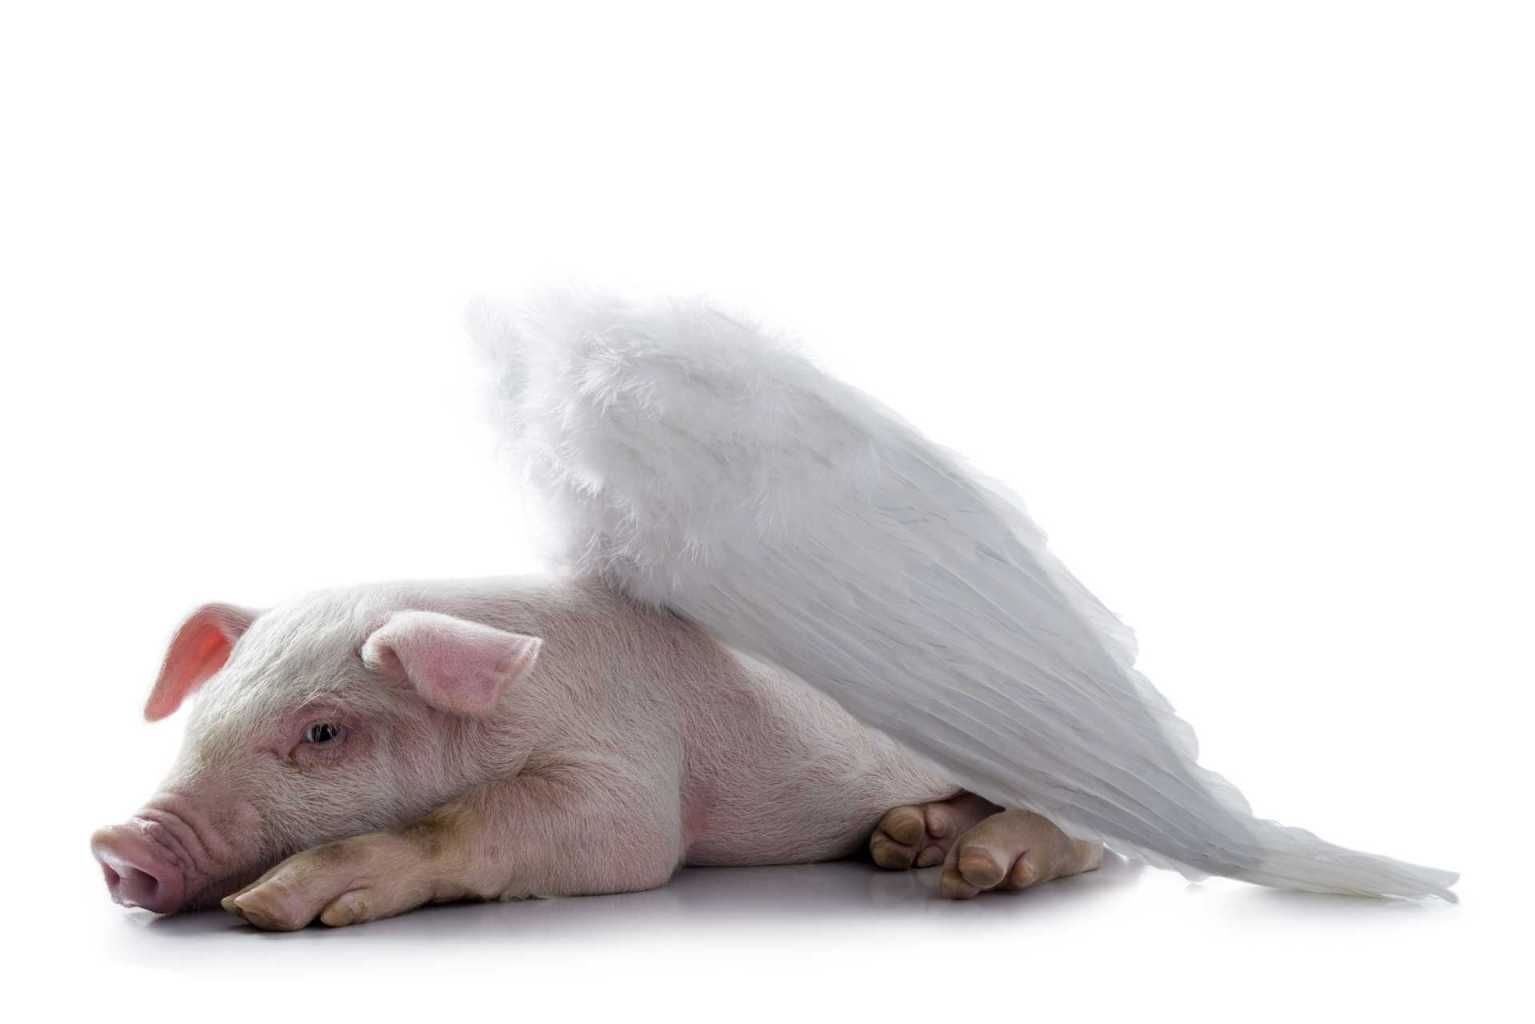 Image Detail For Pig With Wings Lying Down